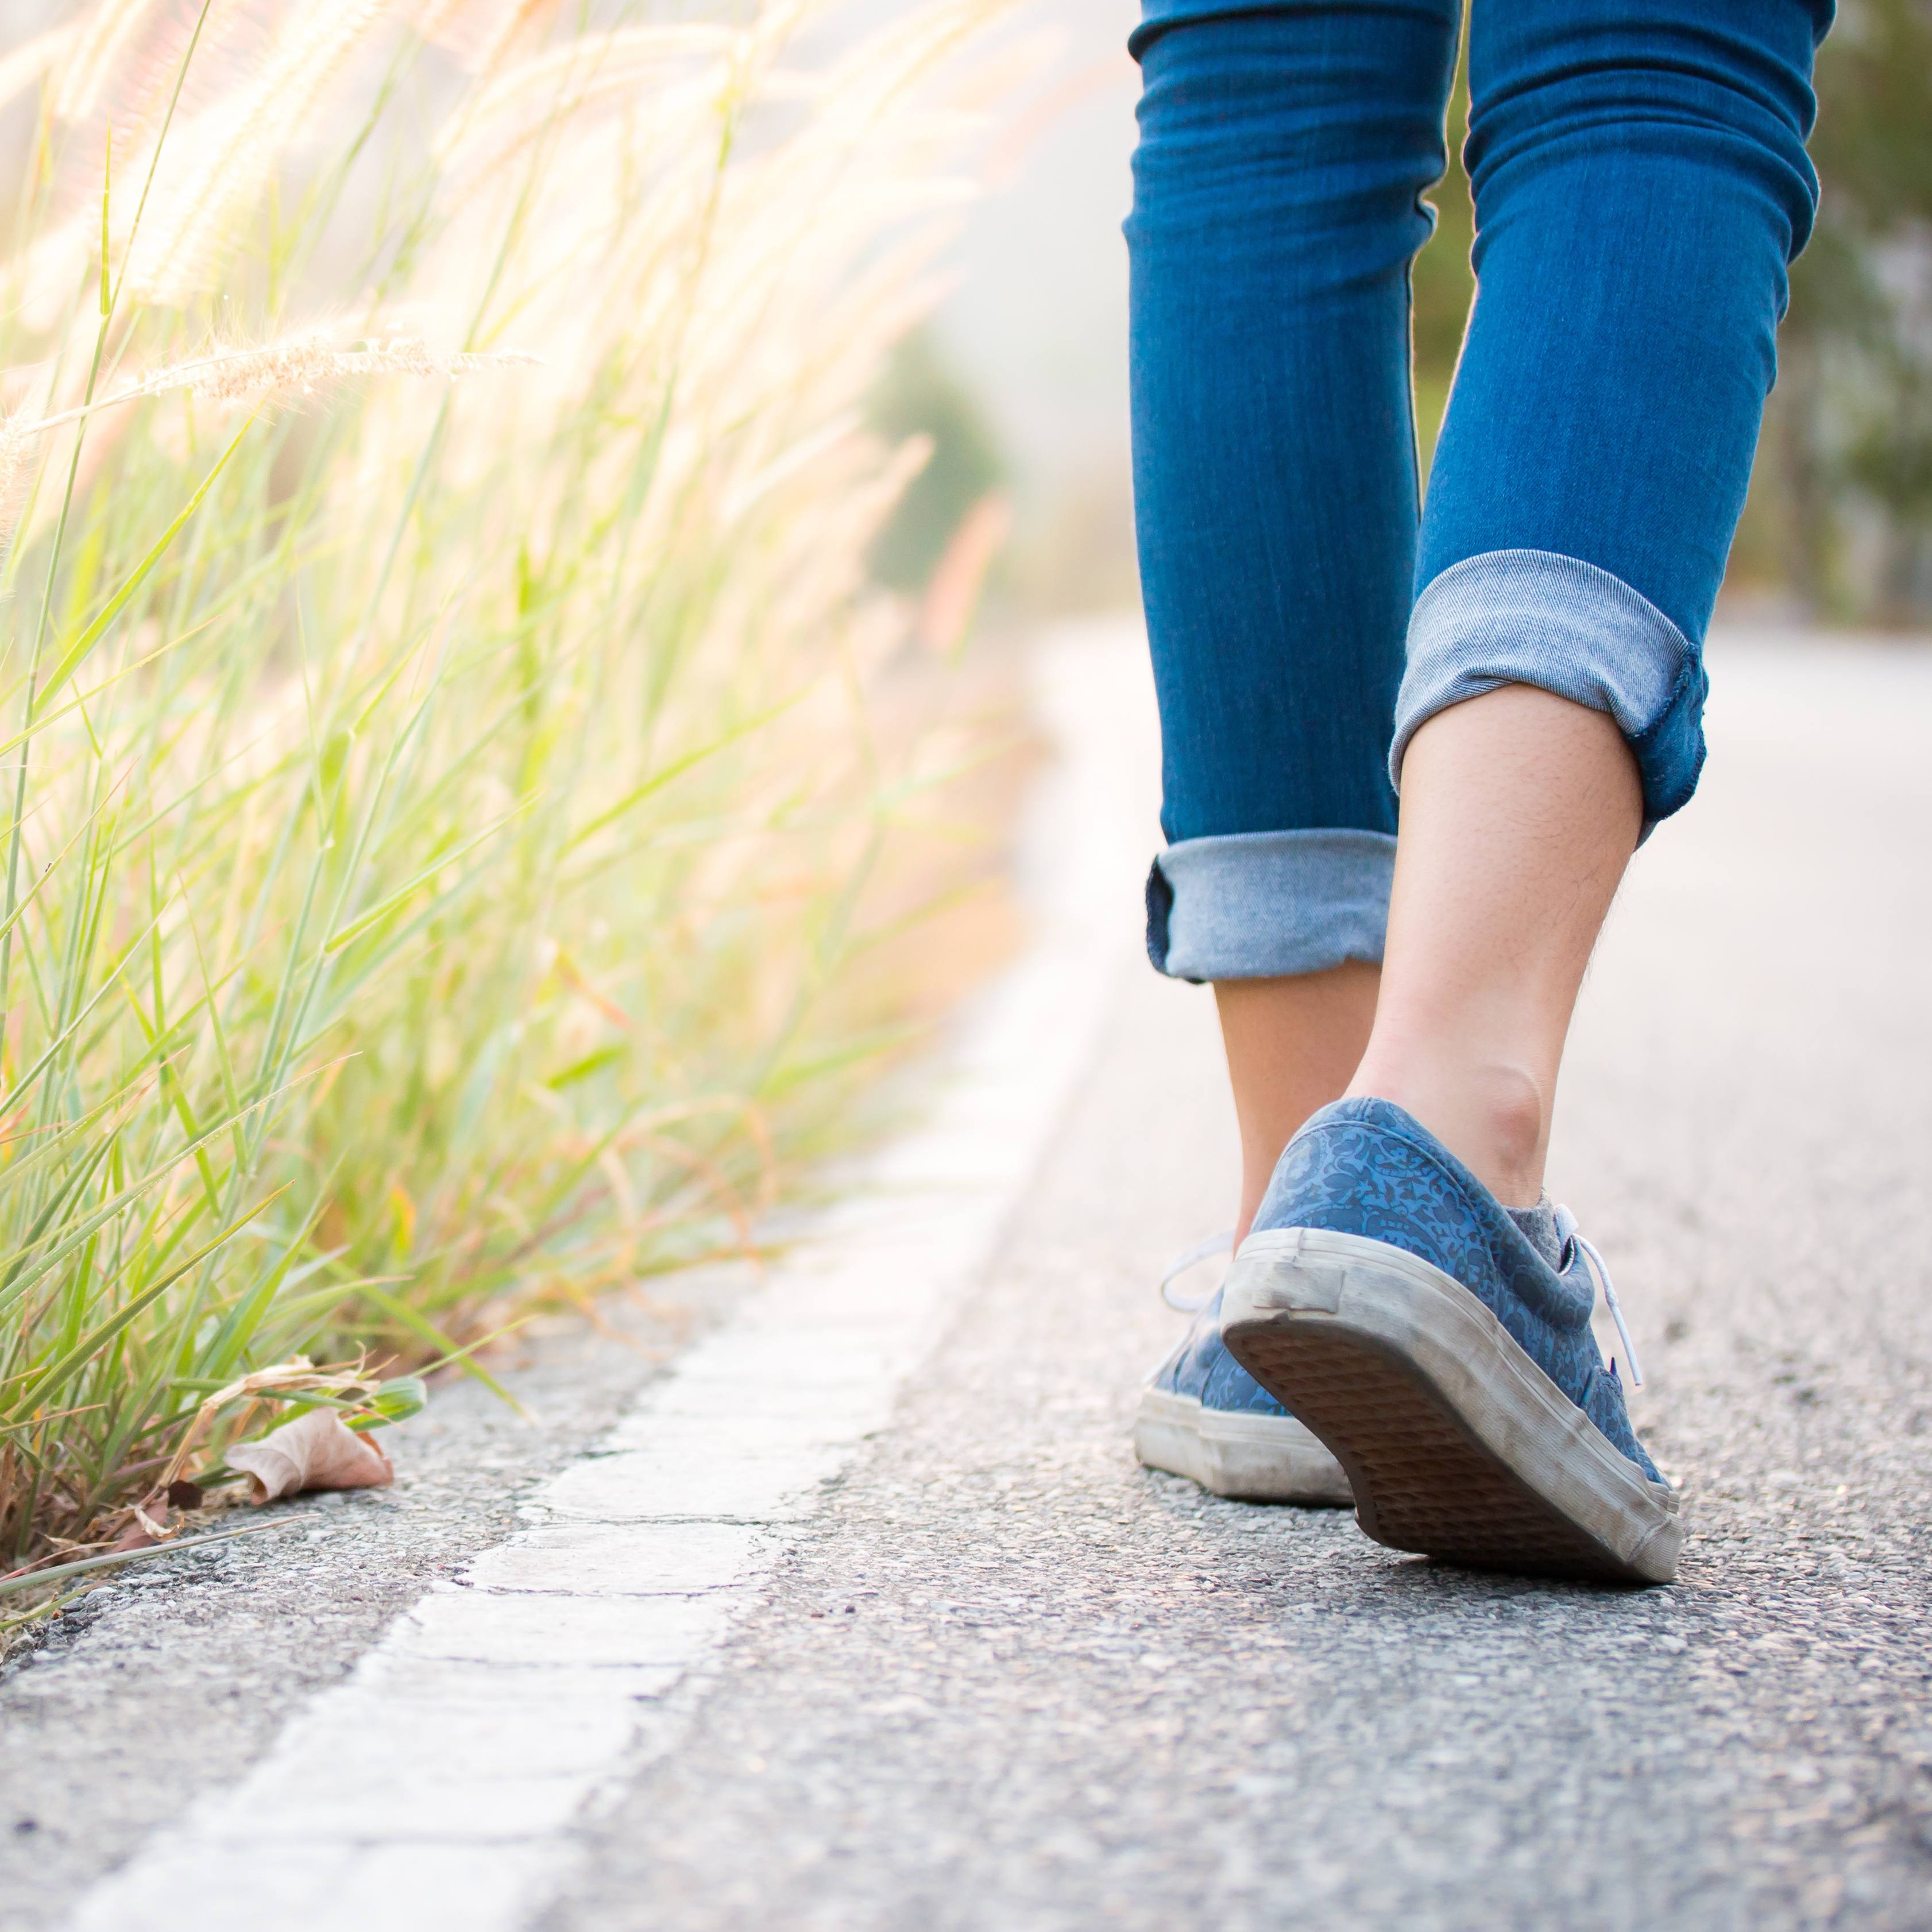 a closeup from behind of a Caucasian woman's leg and feet, wearing jeans and tennis shoes walking down a paved road beside tall grass